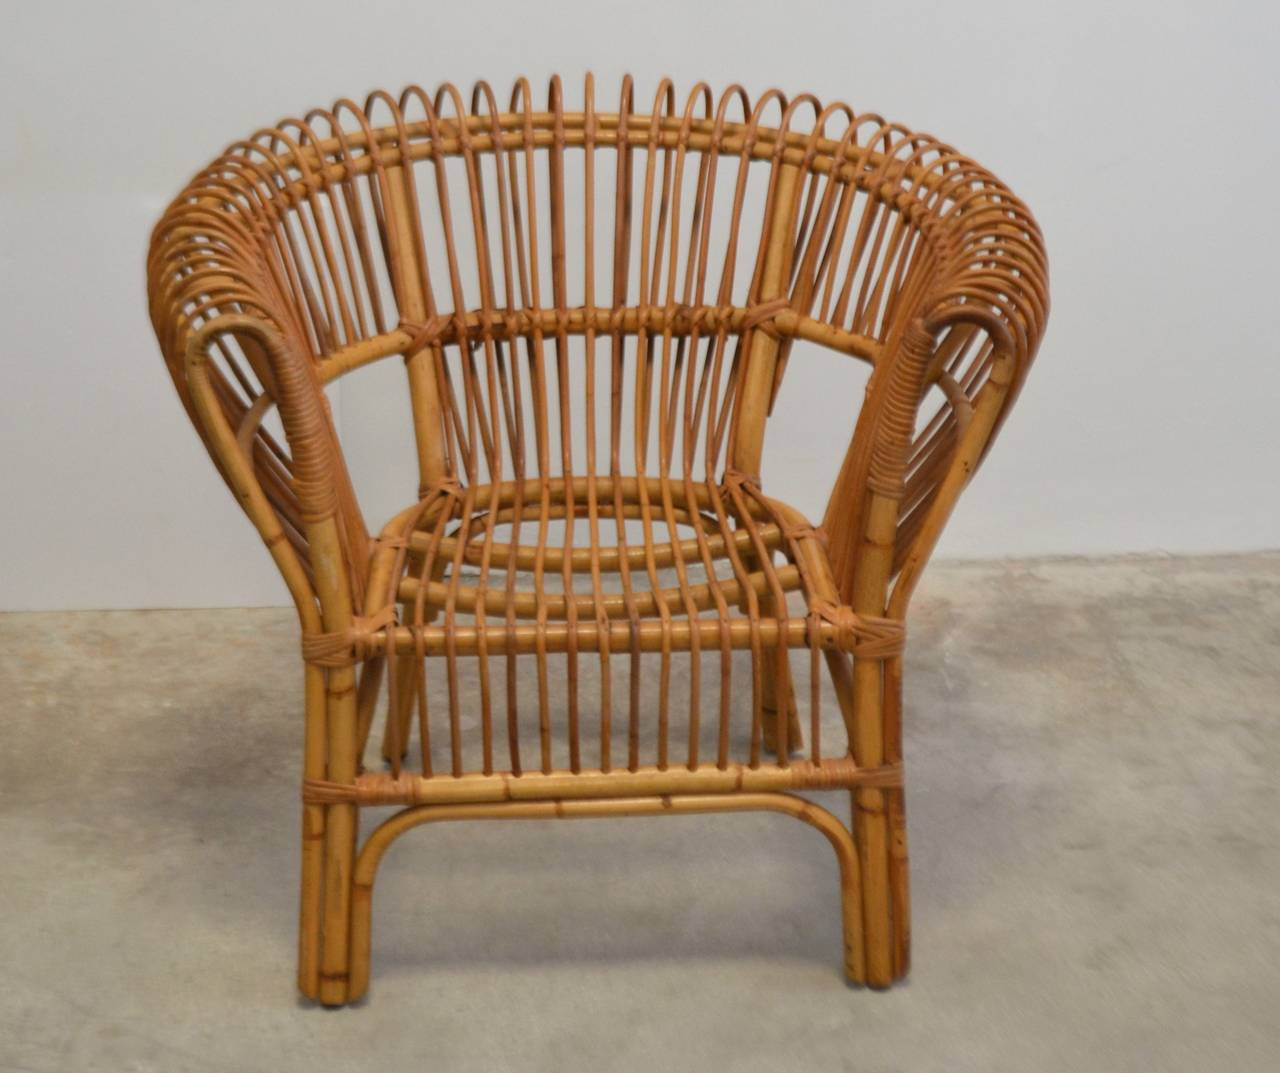 Italian Rattan Lounge Chair at 1stdibs